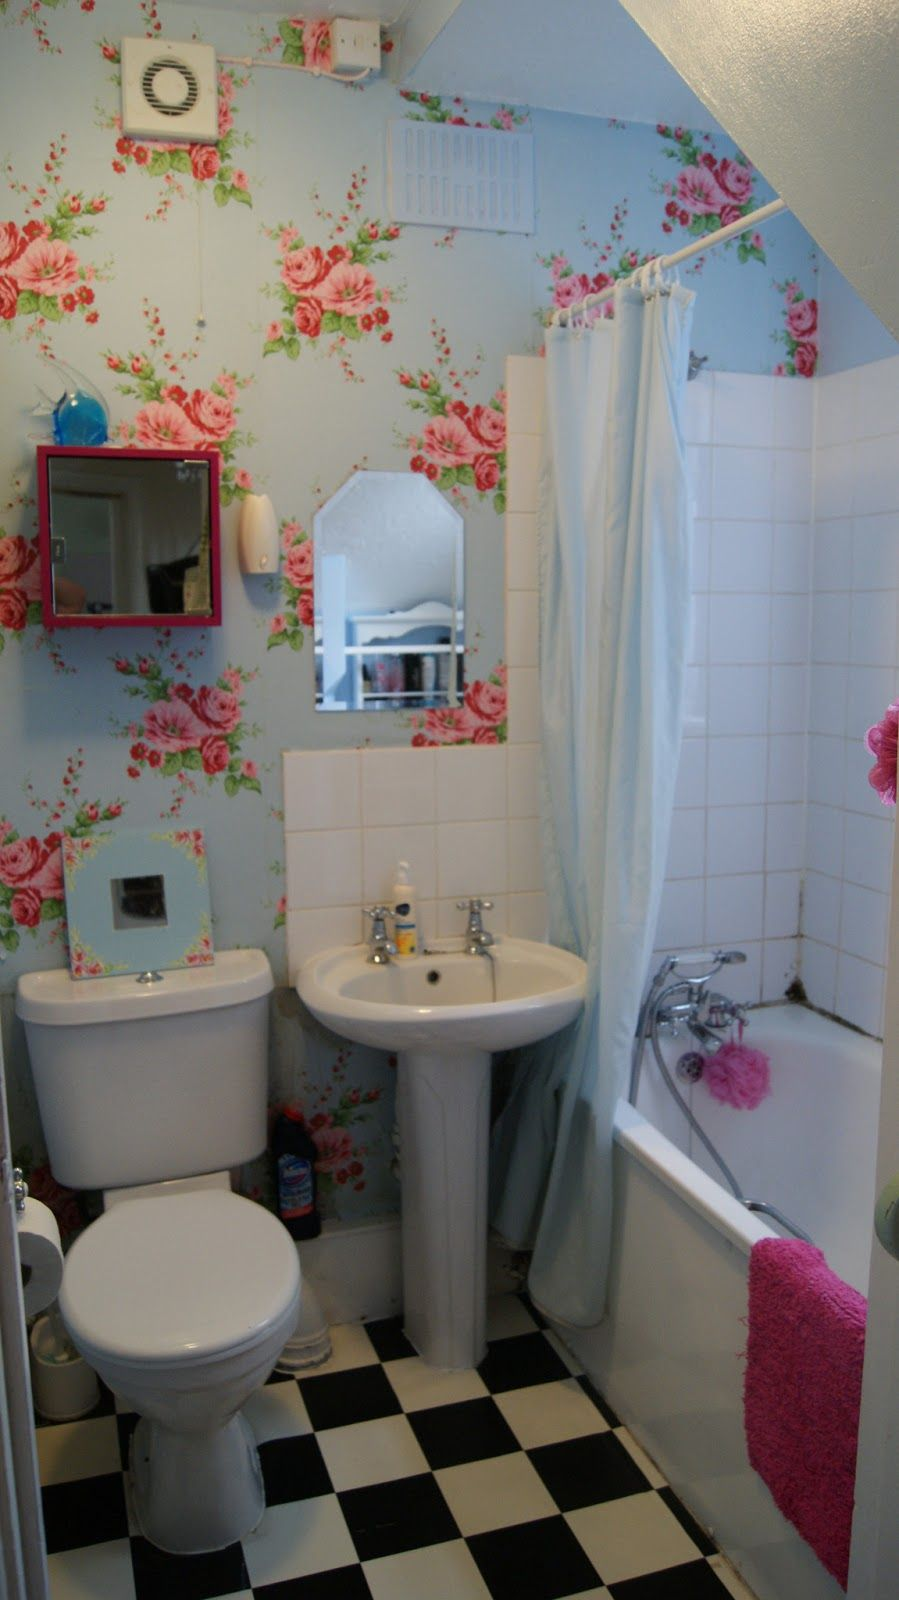 Lavish Very Small Bathroom Design Idea With Blue Wallpaper With - Floral bath towels for small bathroom ideas